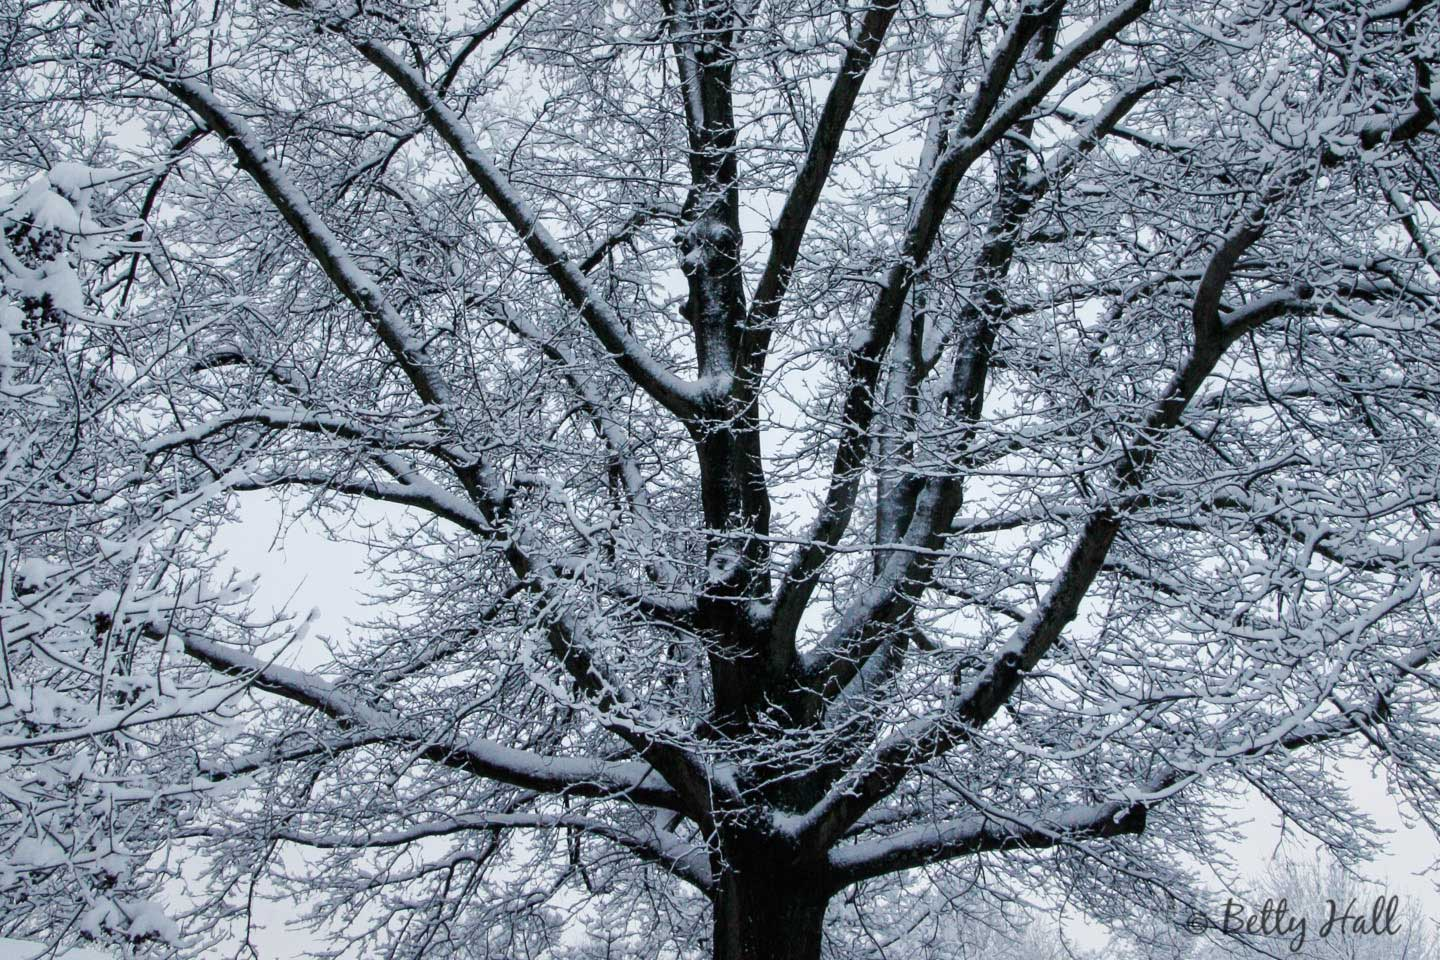 pin oak tree with snow